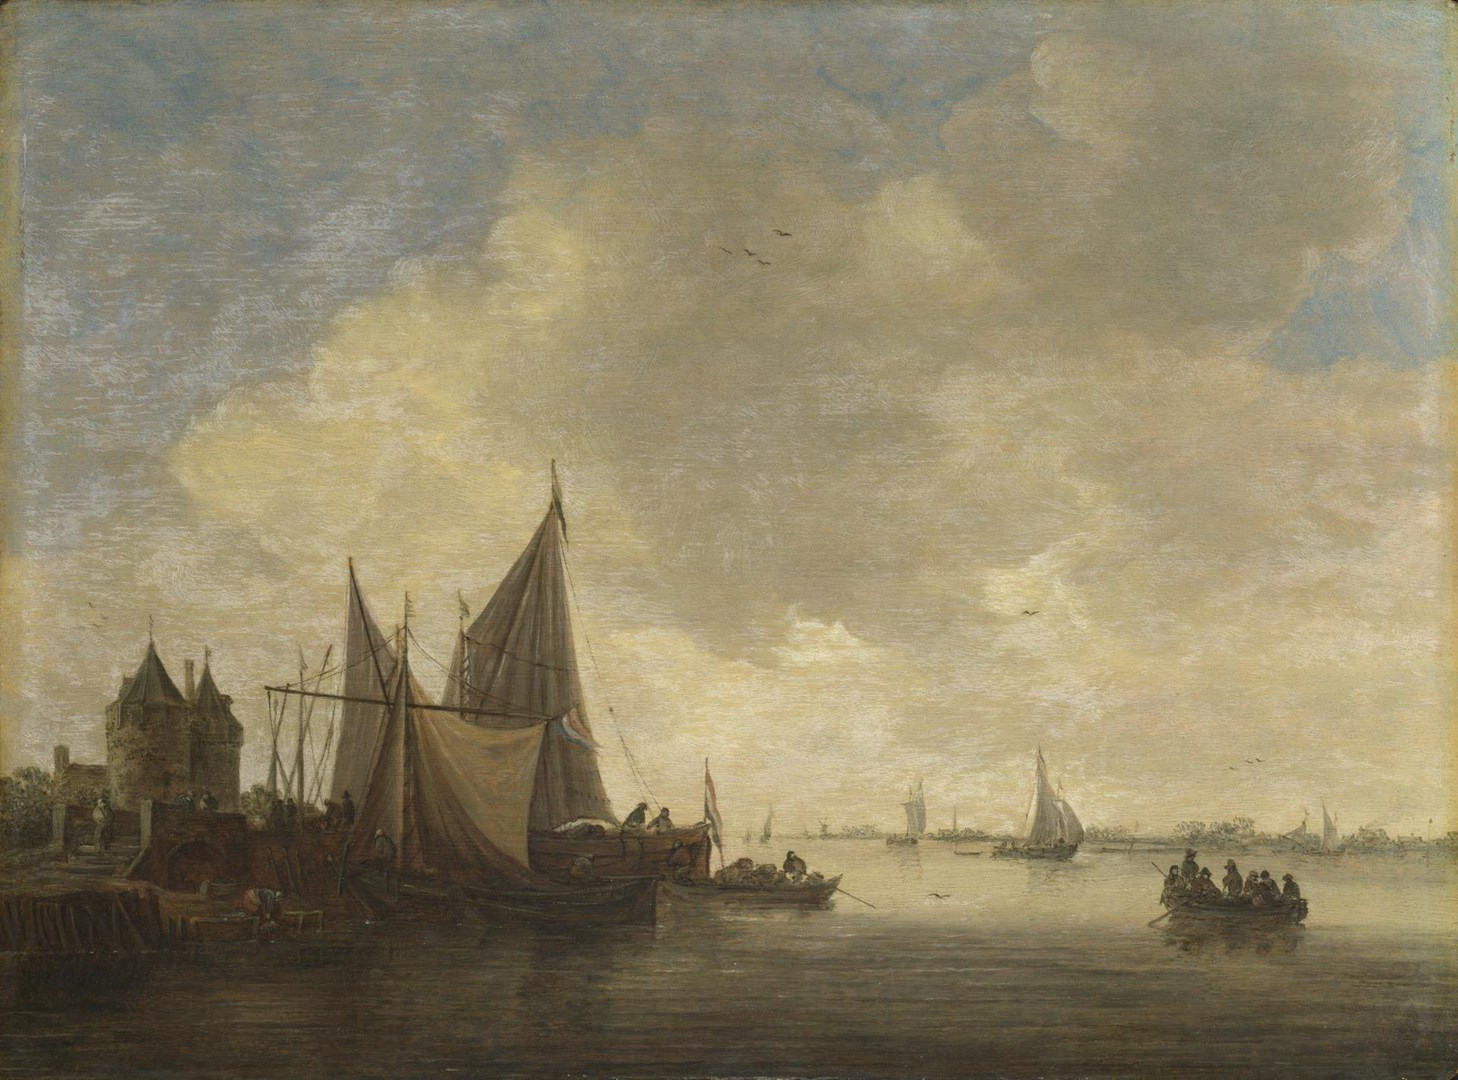 The Mouth of an Estuary with a Gateway by Jan van Goyen